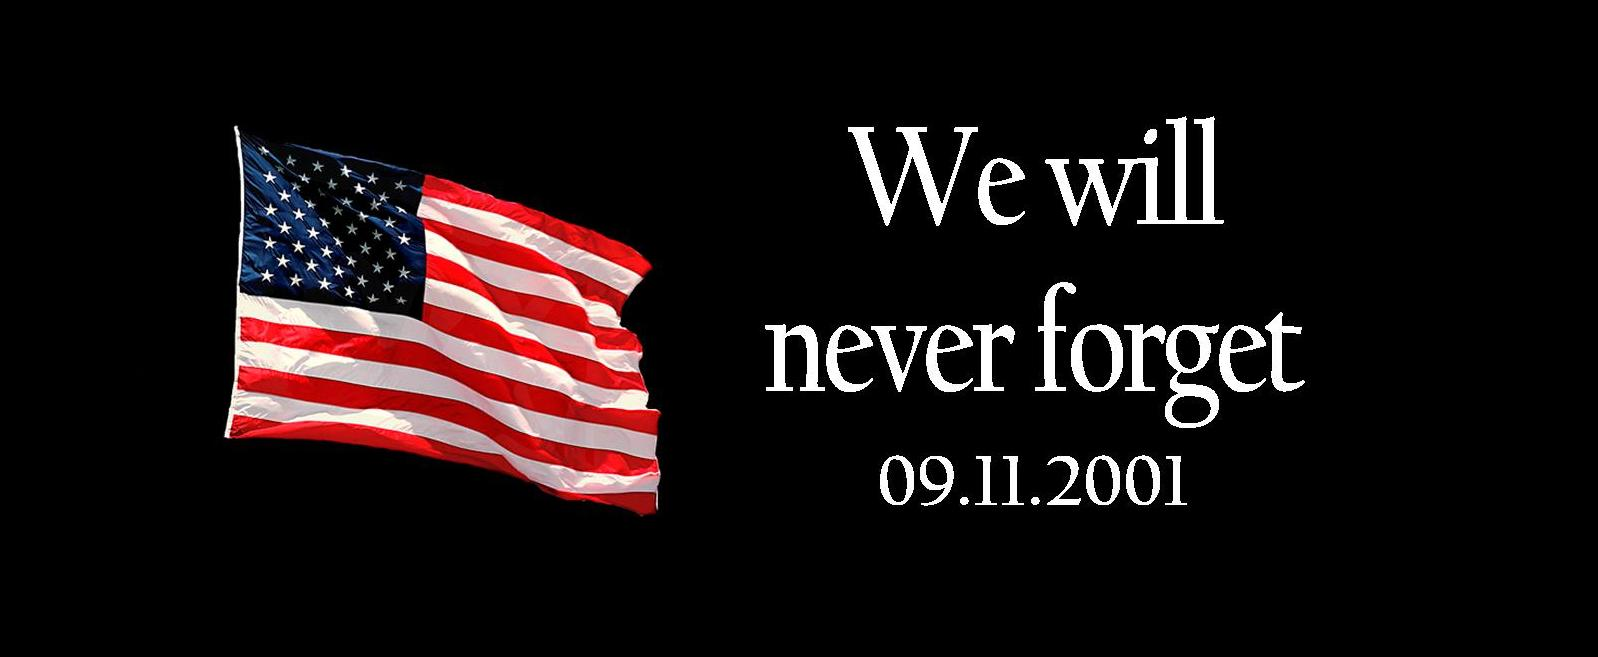 September 11th quotes quotes about september 11th sayings about - 11 Sept 2015 Patriot Day Quotes Sayings Wishes Sms Whatsapp Status Images Dp Photos 11 Sept Patriot Day